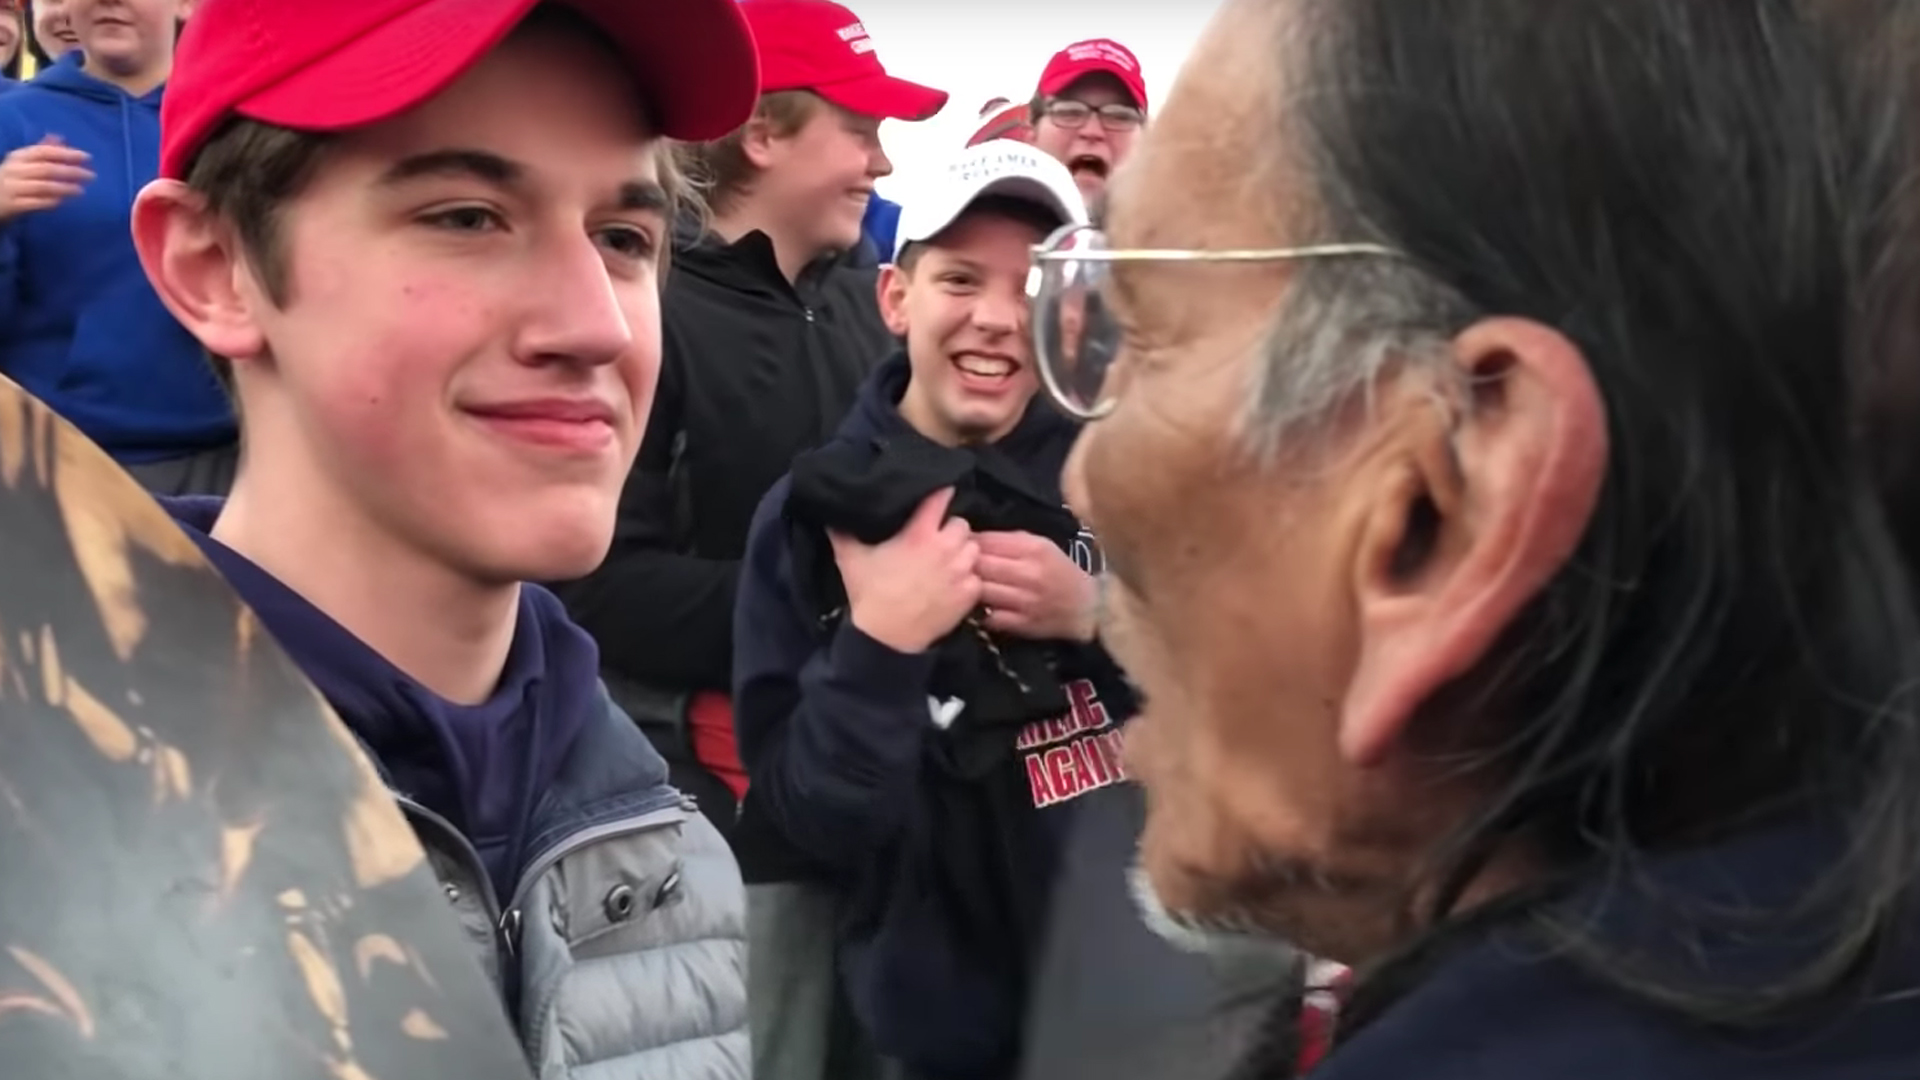 A screenshot from a video posted to YouTube on Jan. 18, 2019 by user KC NOLAND shows a boy wearing a MAGA hat in front of a Native American man.